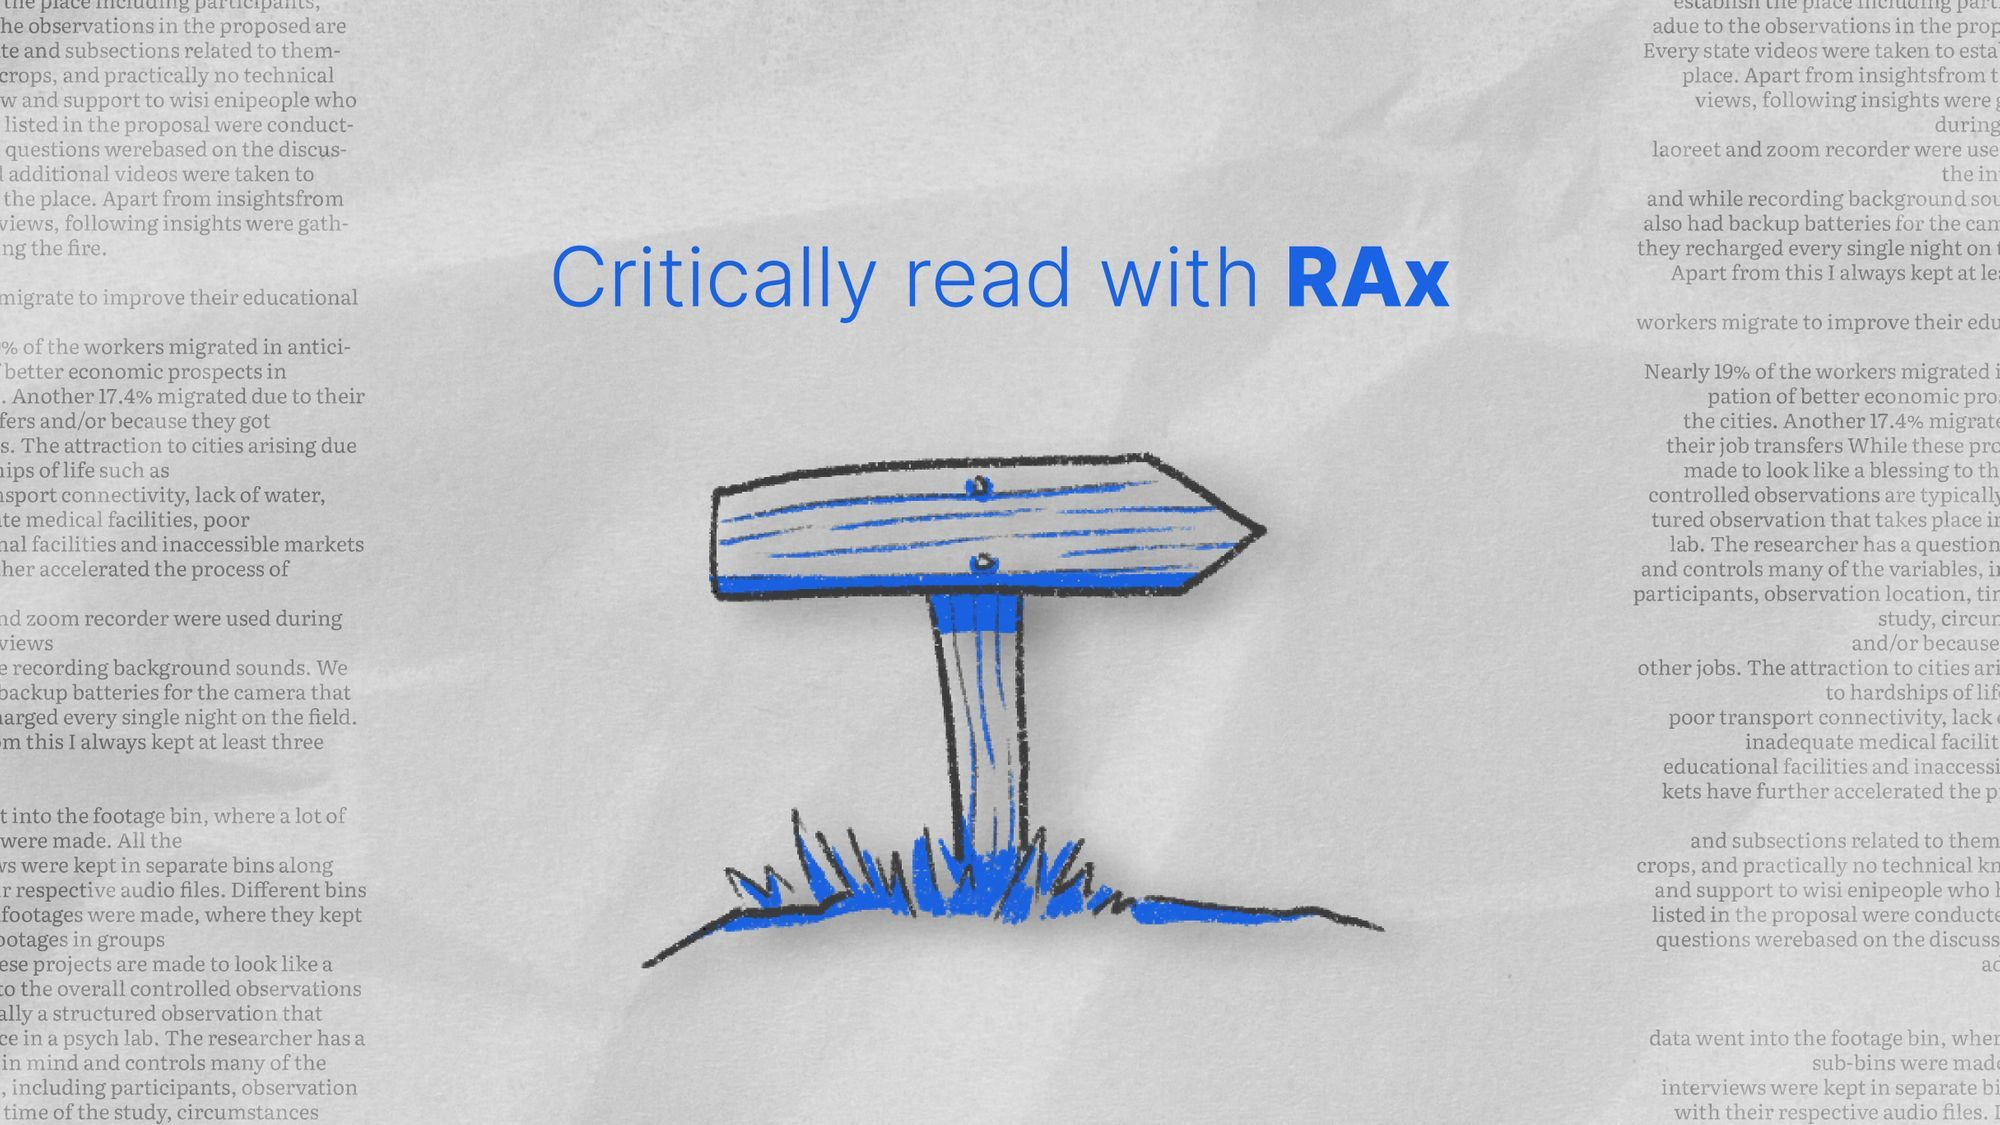 How to critically read a research paper with RAx